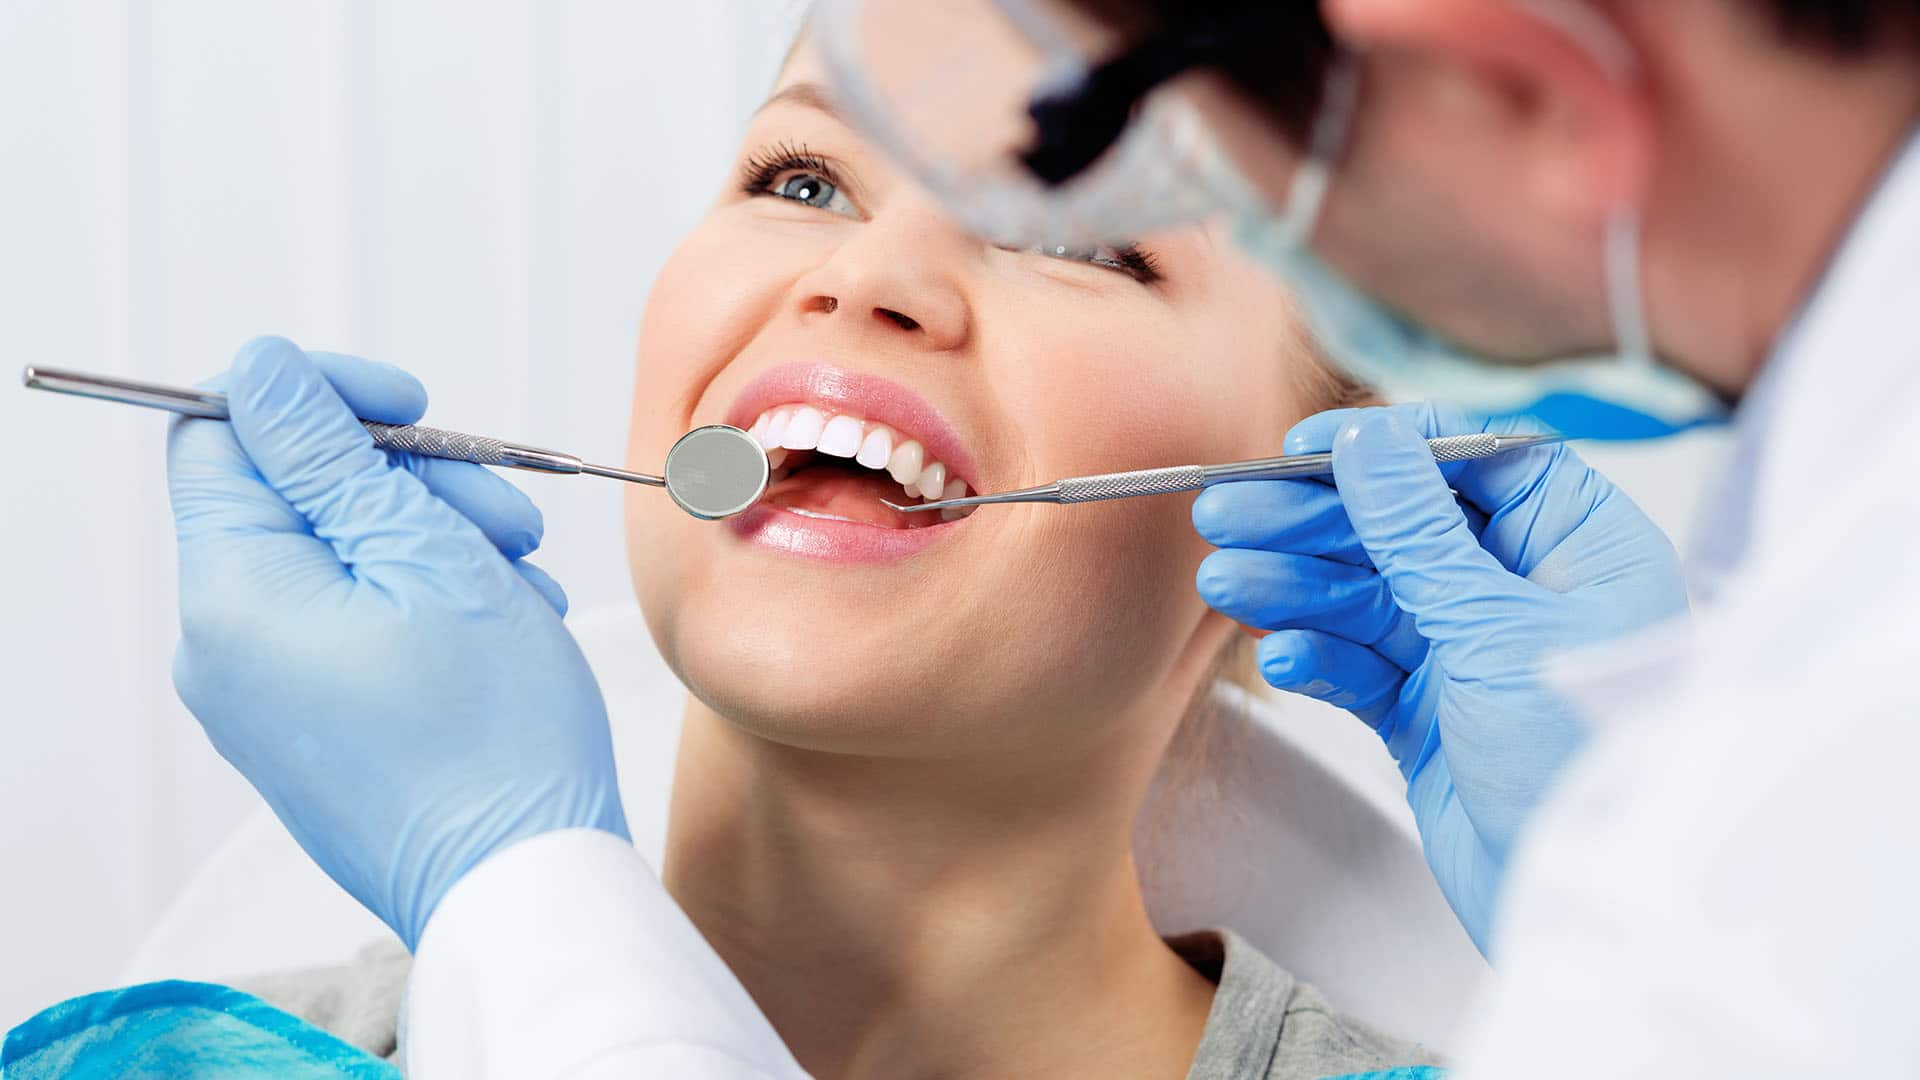 What To Look For In A Dentist Near Me